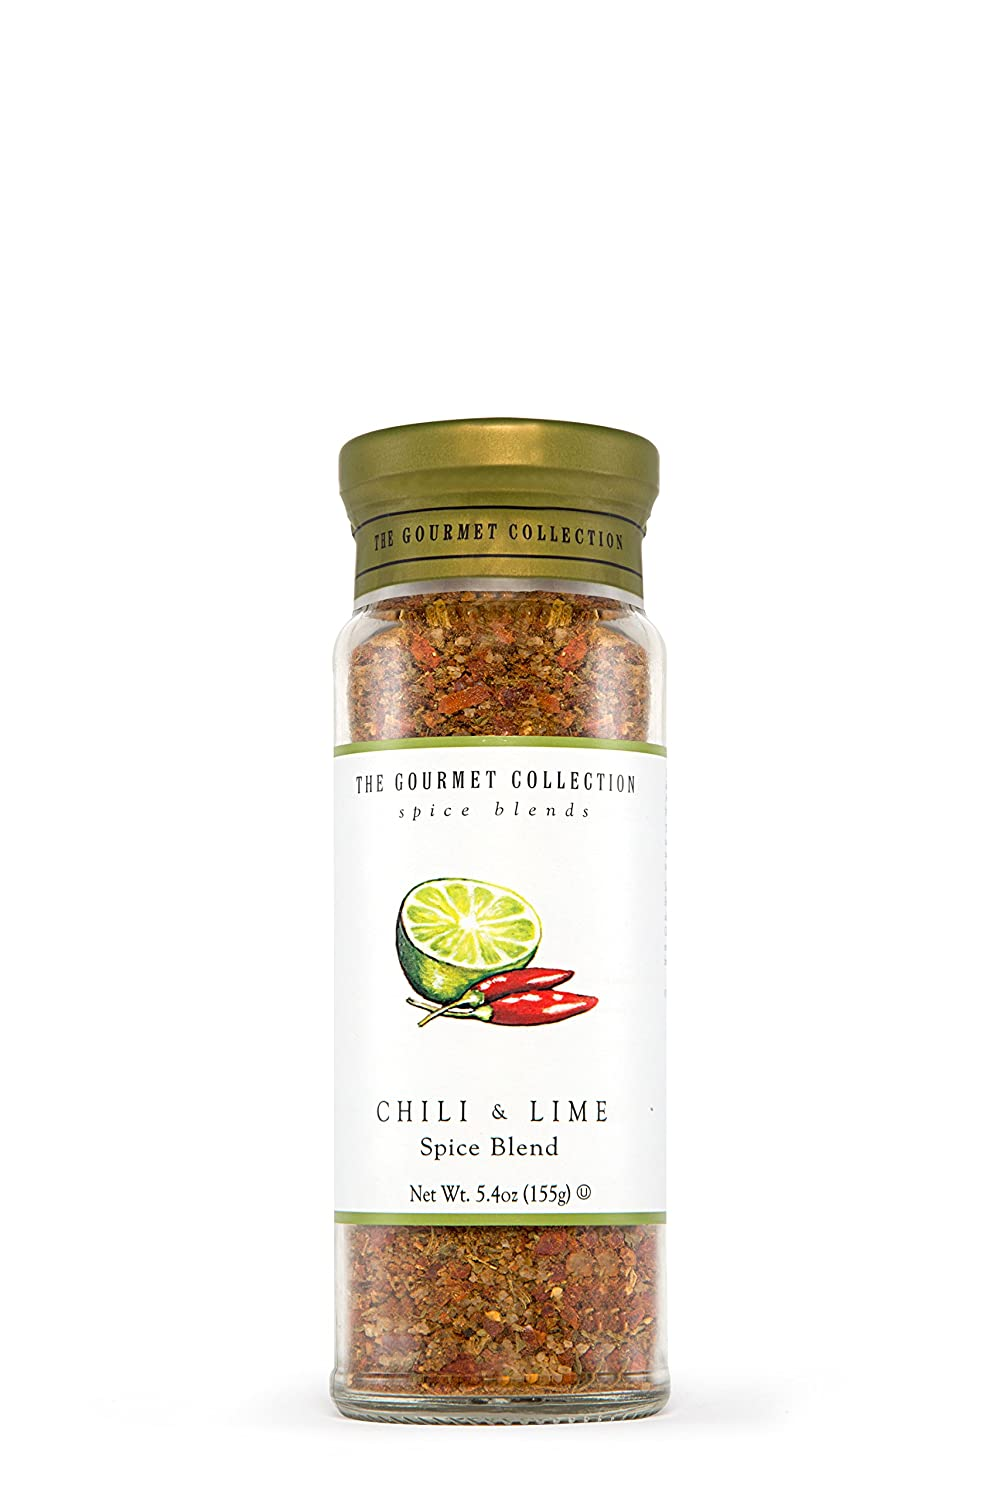 The Gourmet Collection Seasoning Blends, Chili and Lime Spice Blend - Seasoning for Cooking Fish, Soup, Chicken Wings, Salmon, Salads, Vegetables.